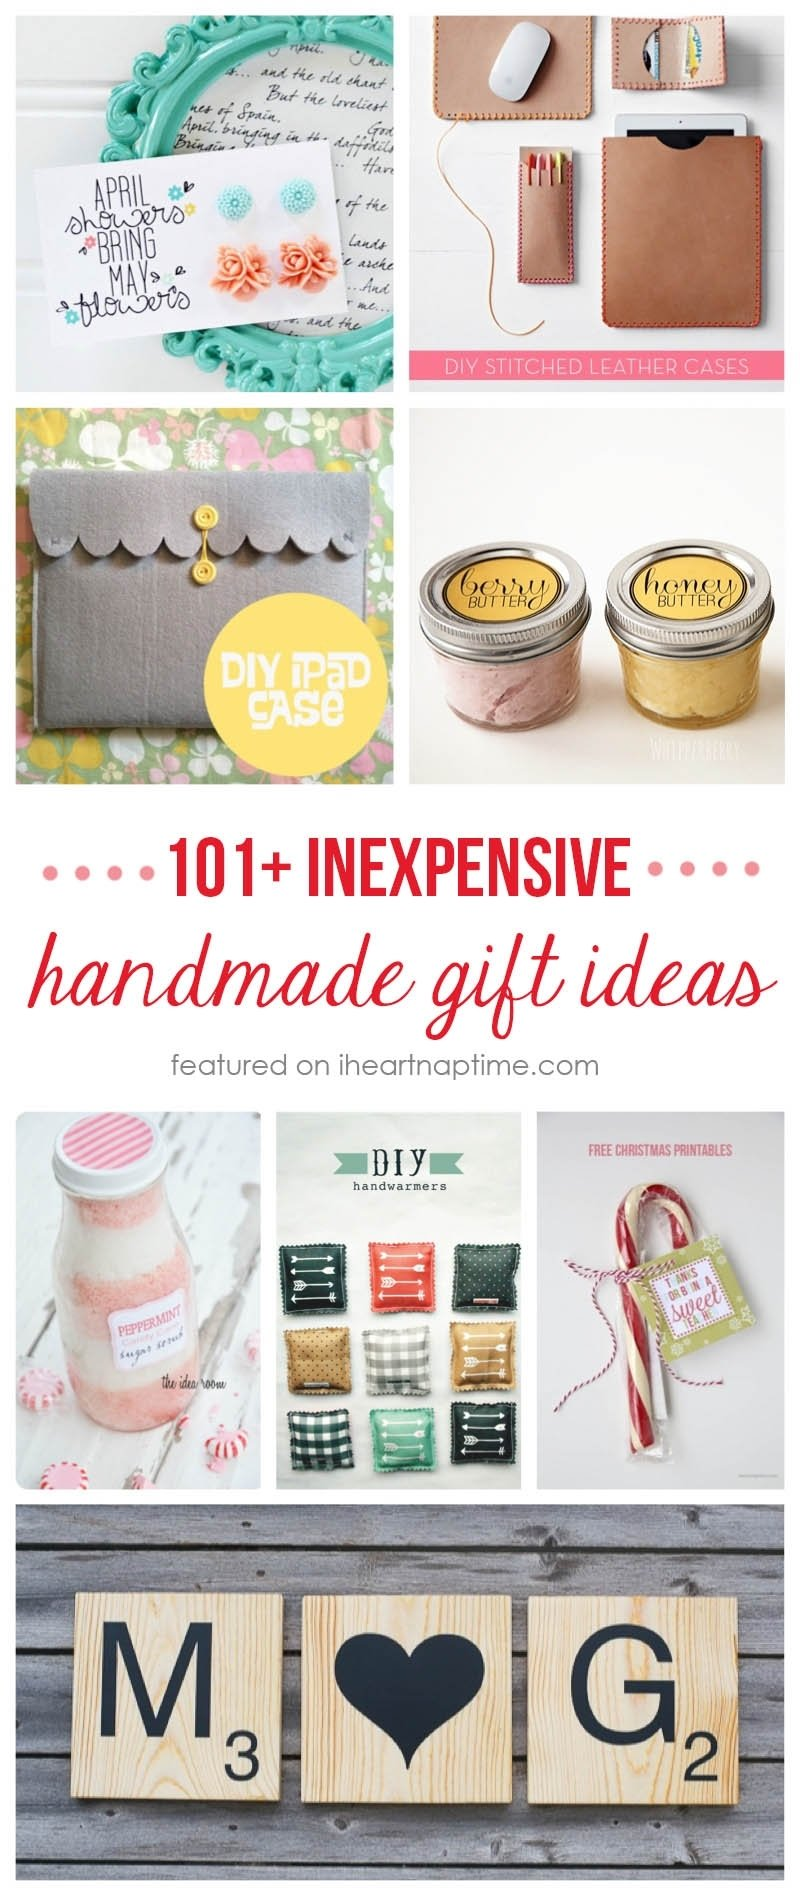 10 Beautiful Unique Christmas Gift Ideas For Couples 101 inexpensive handmade christmas gifts i heart nap time 1 2021